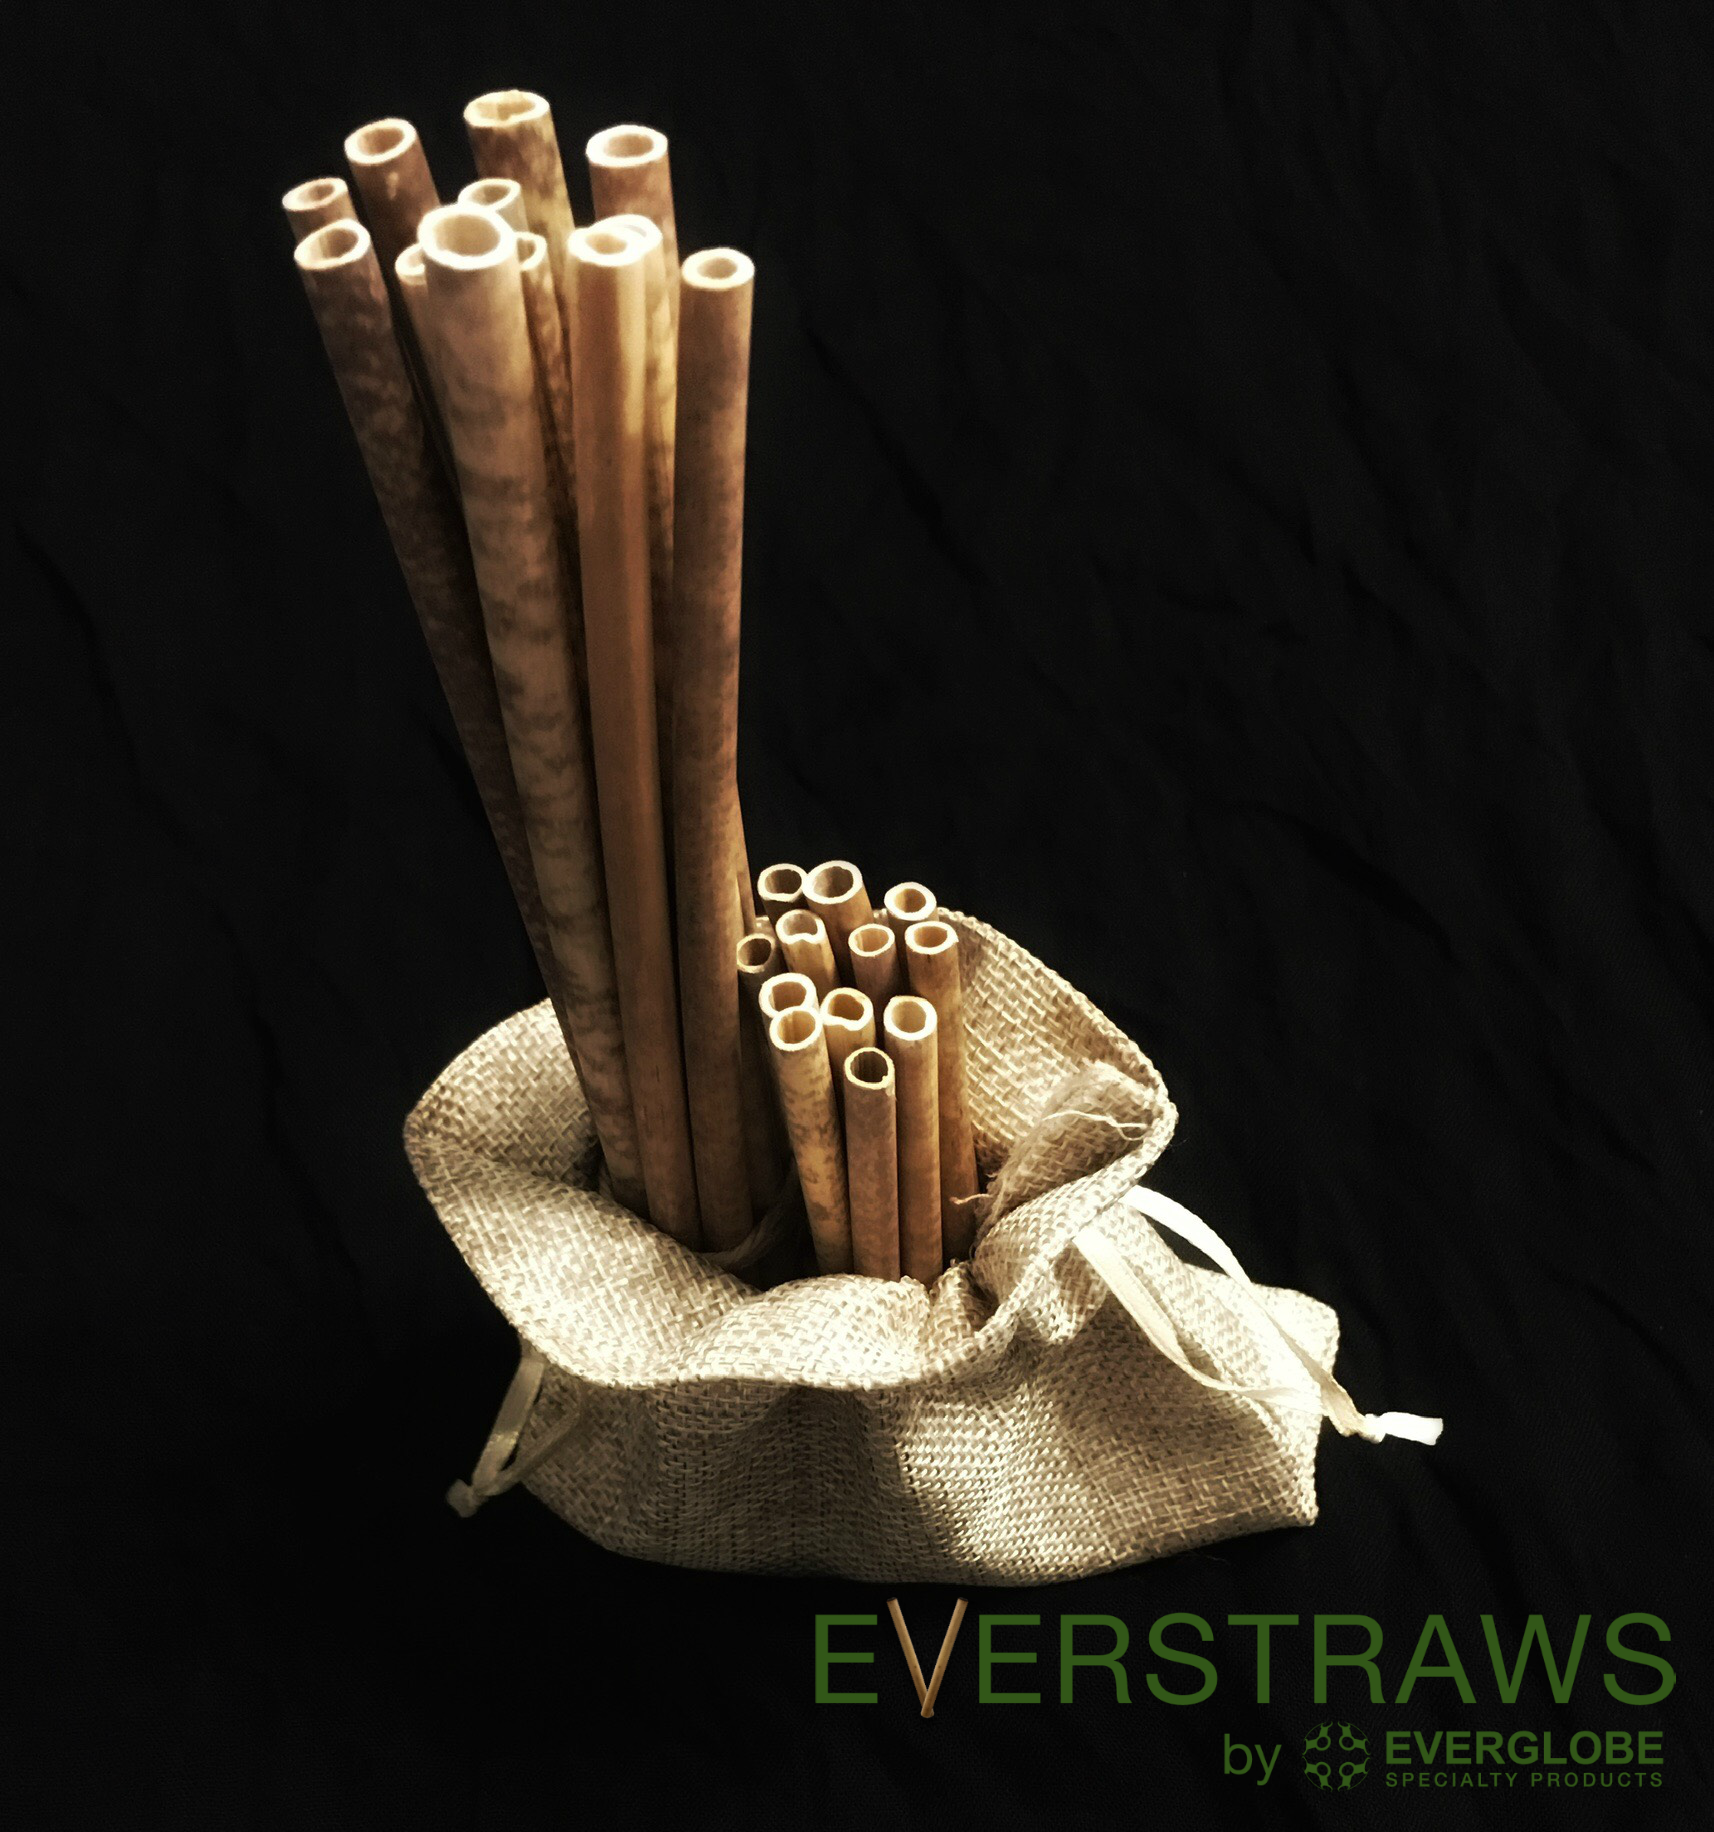 bamboo straws in 5 and 8 inch size in a fabric bag.